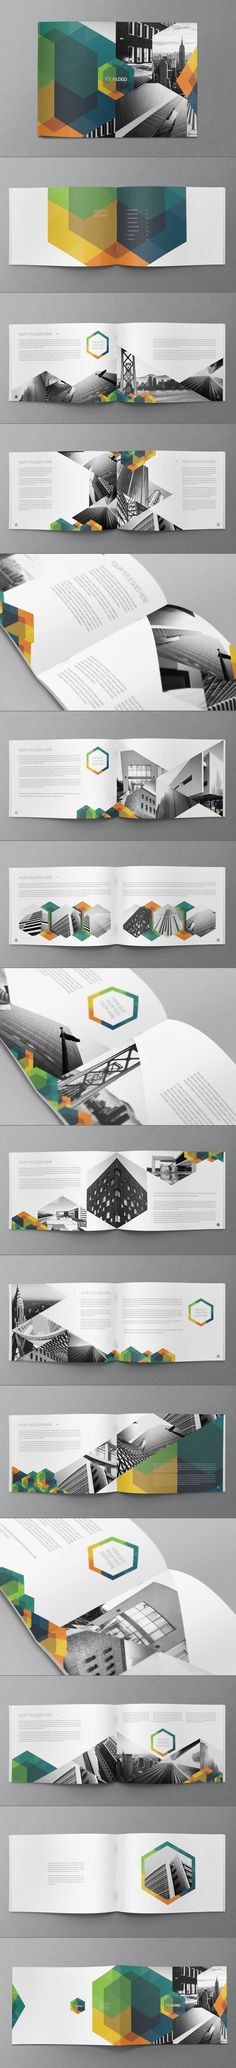 Hexo Brochure Design on Behance - 內頁